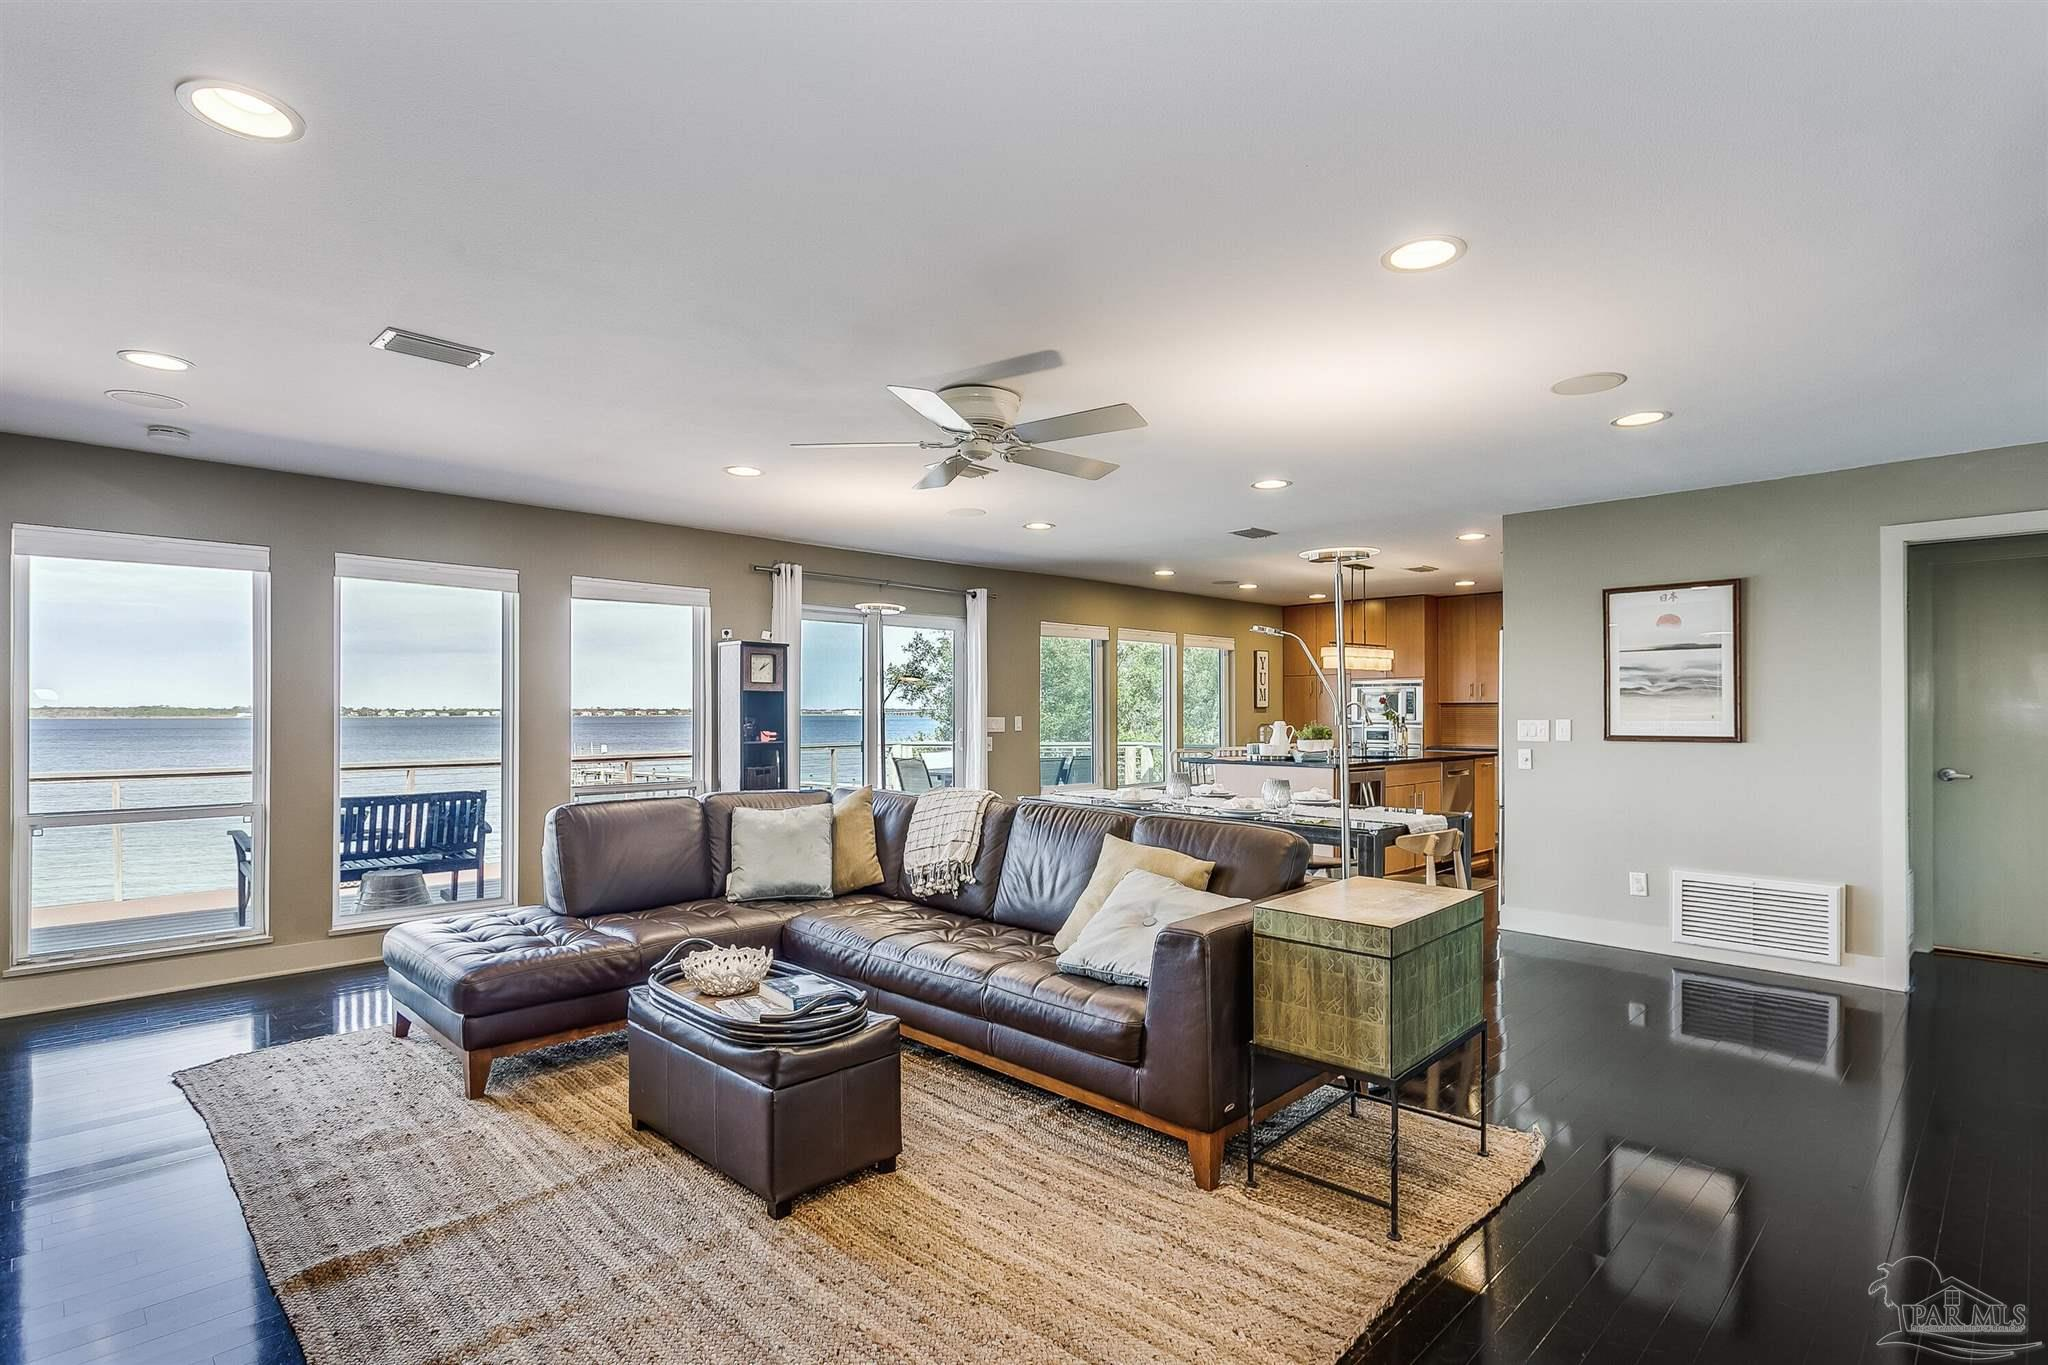 Professional photos will be uploaded tomorrow 10/27. Open house on Saturday and Sunday, from 12-4 on 10/30 & 10/31. This contemporary coastal home has Picture perfect views and a flexible and open floor plan.